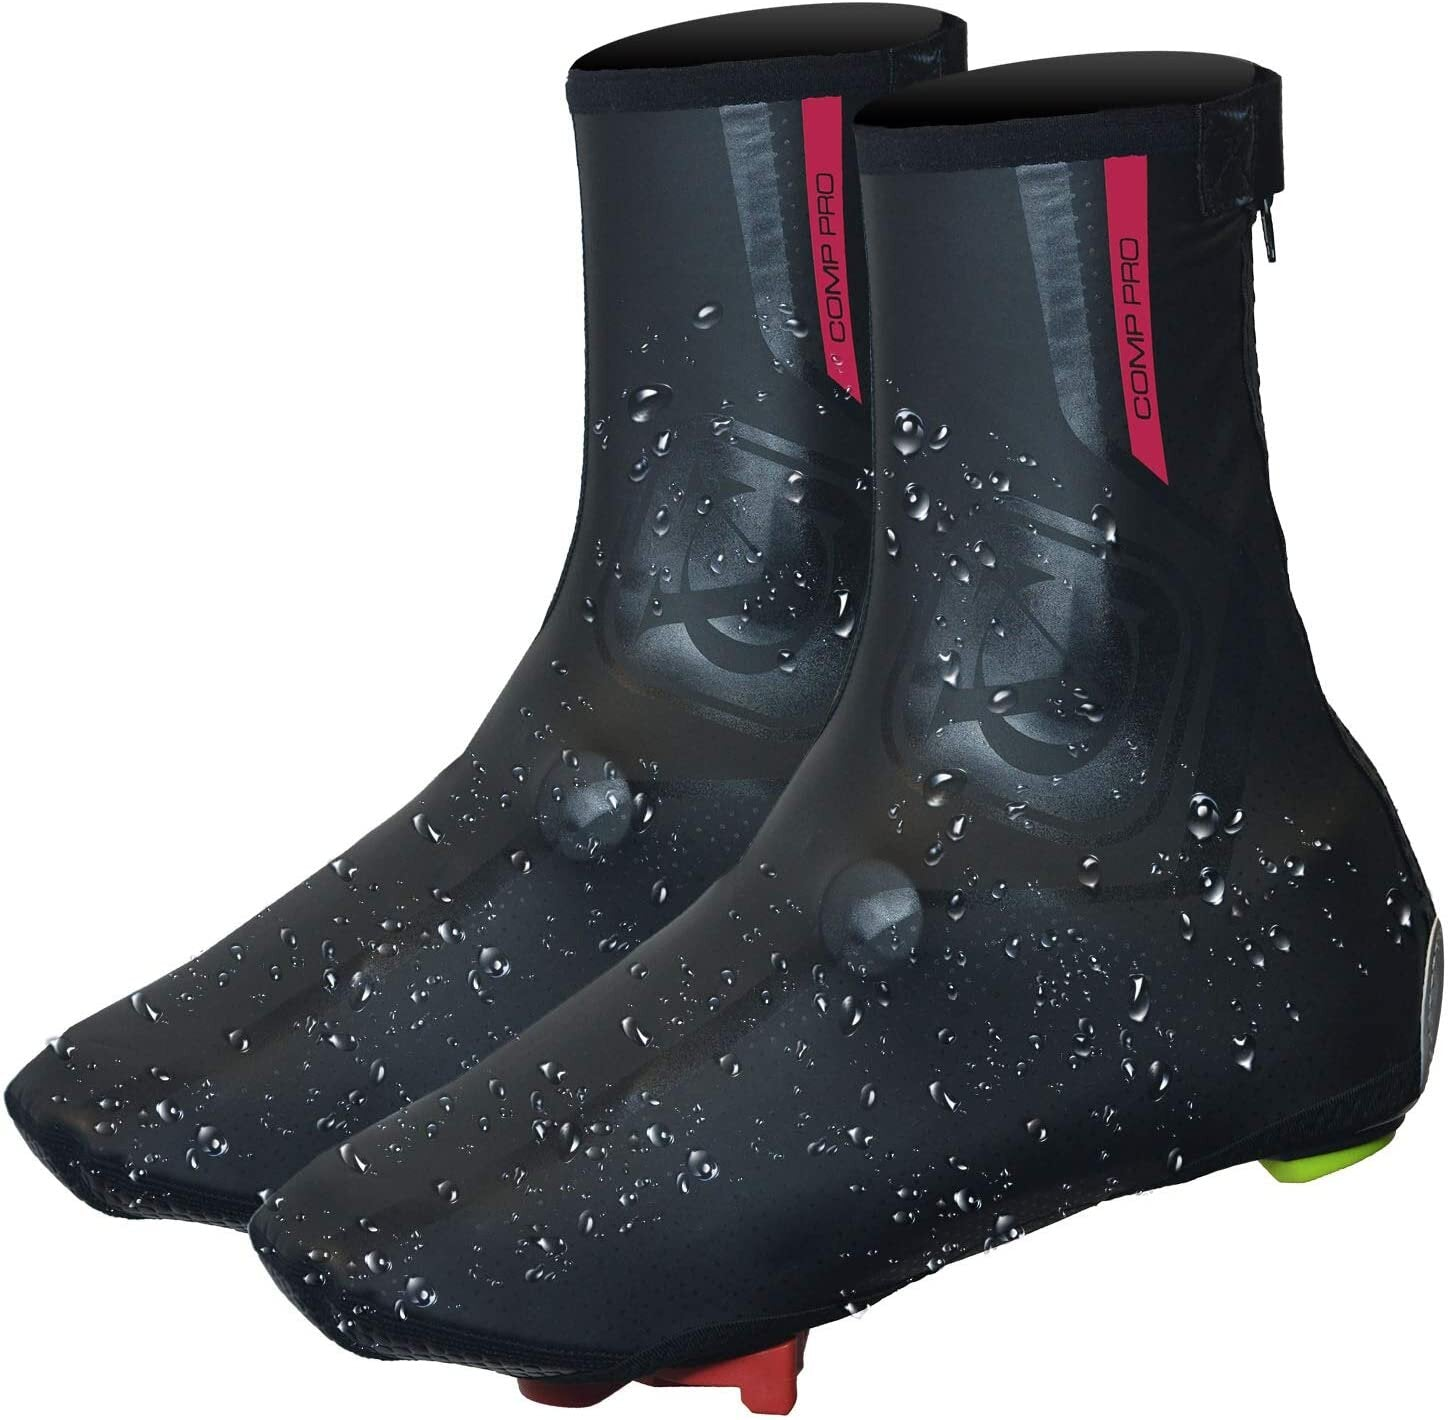 VC Maxgear Overshoes - Lightweight, Fleece Lined & Water Resistant. Ideal for Winter Cycling